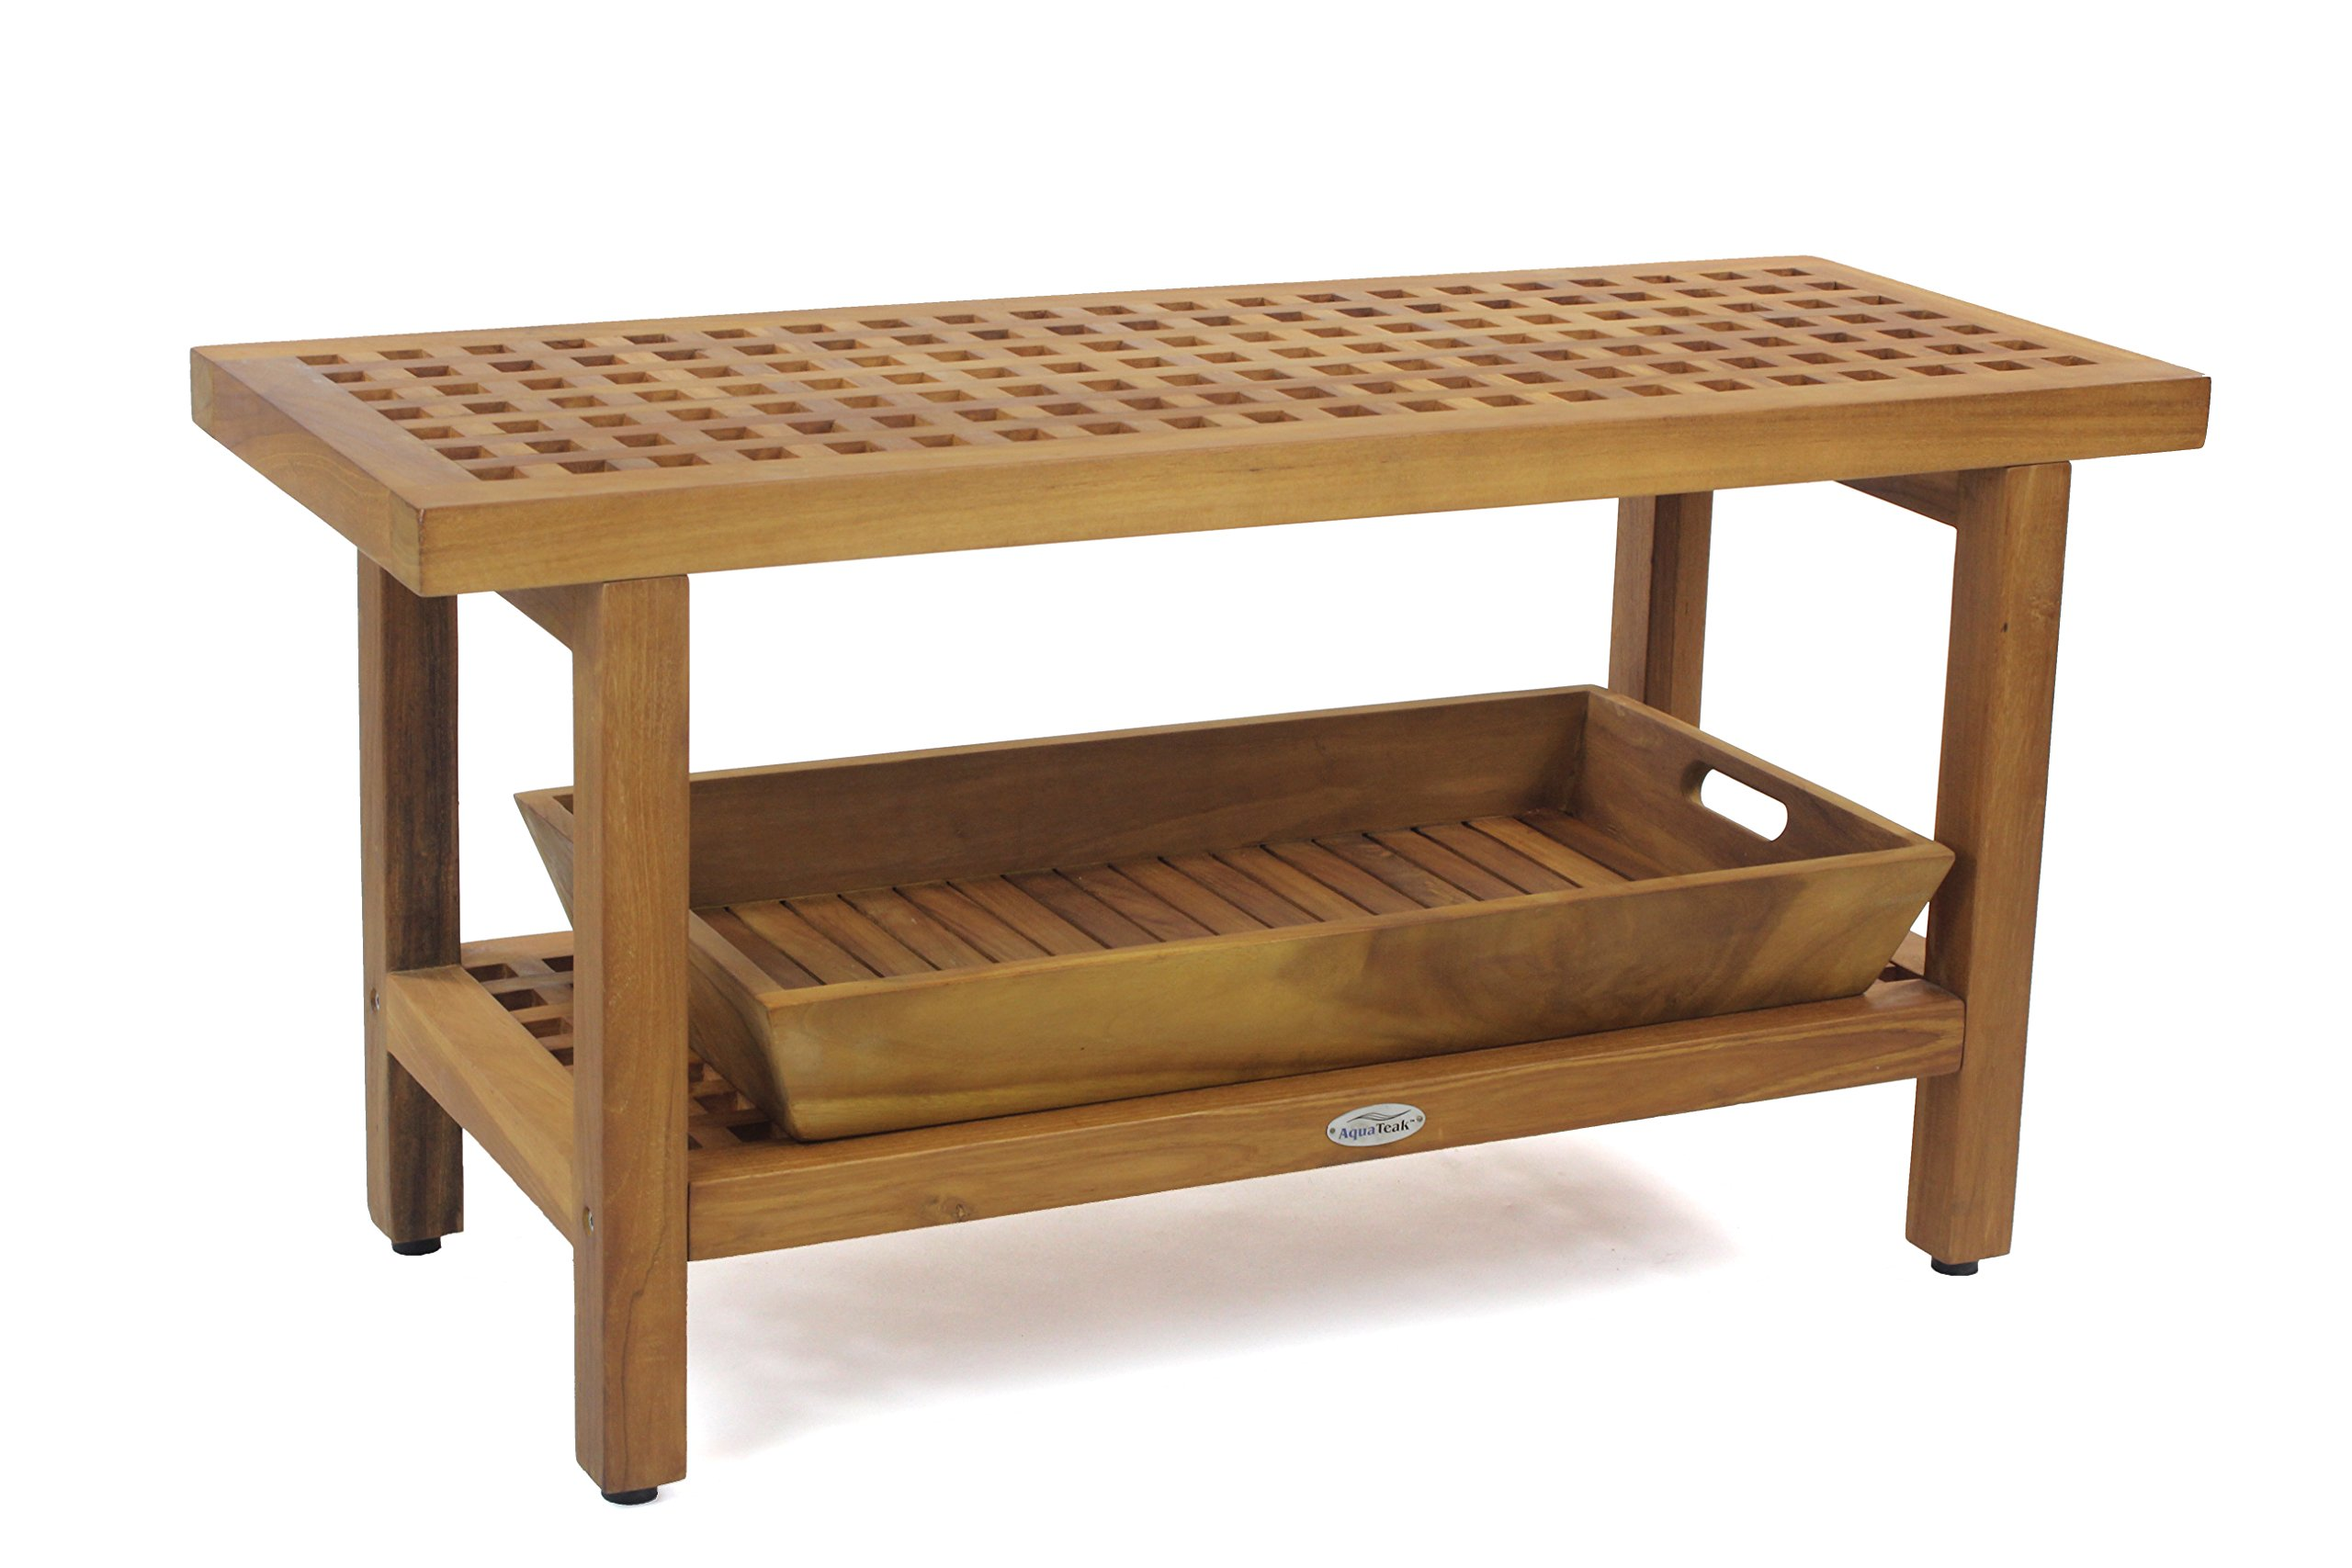 The Original 36'' Grate Teak Shower Bench With Shelf & Large Serving Tray